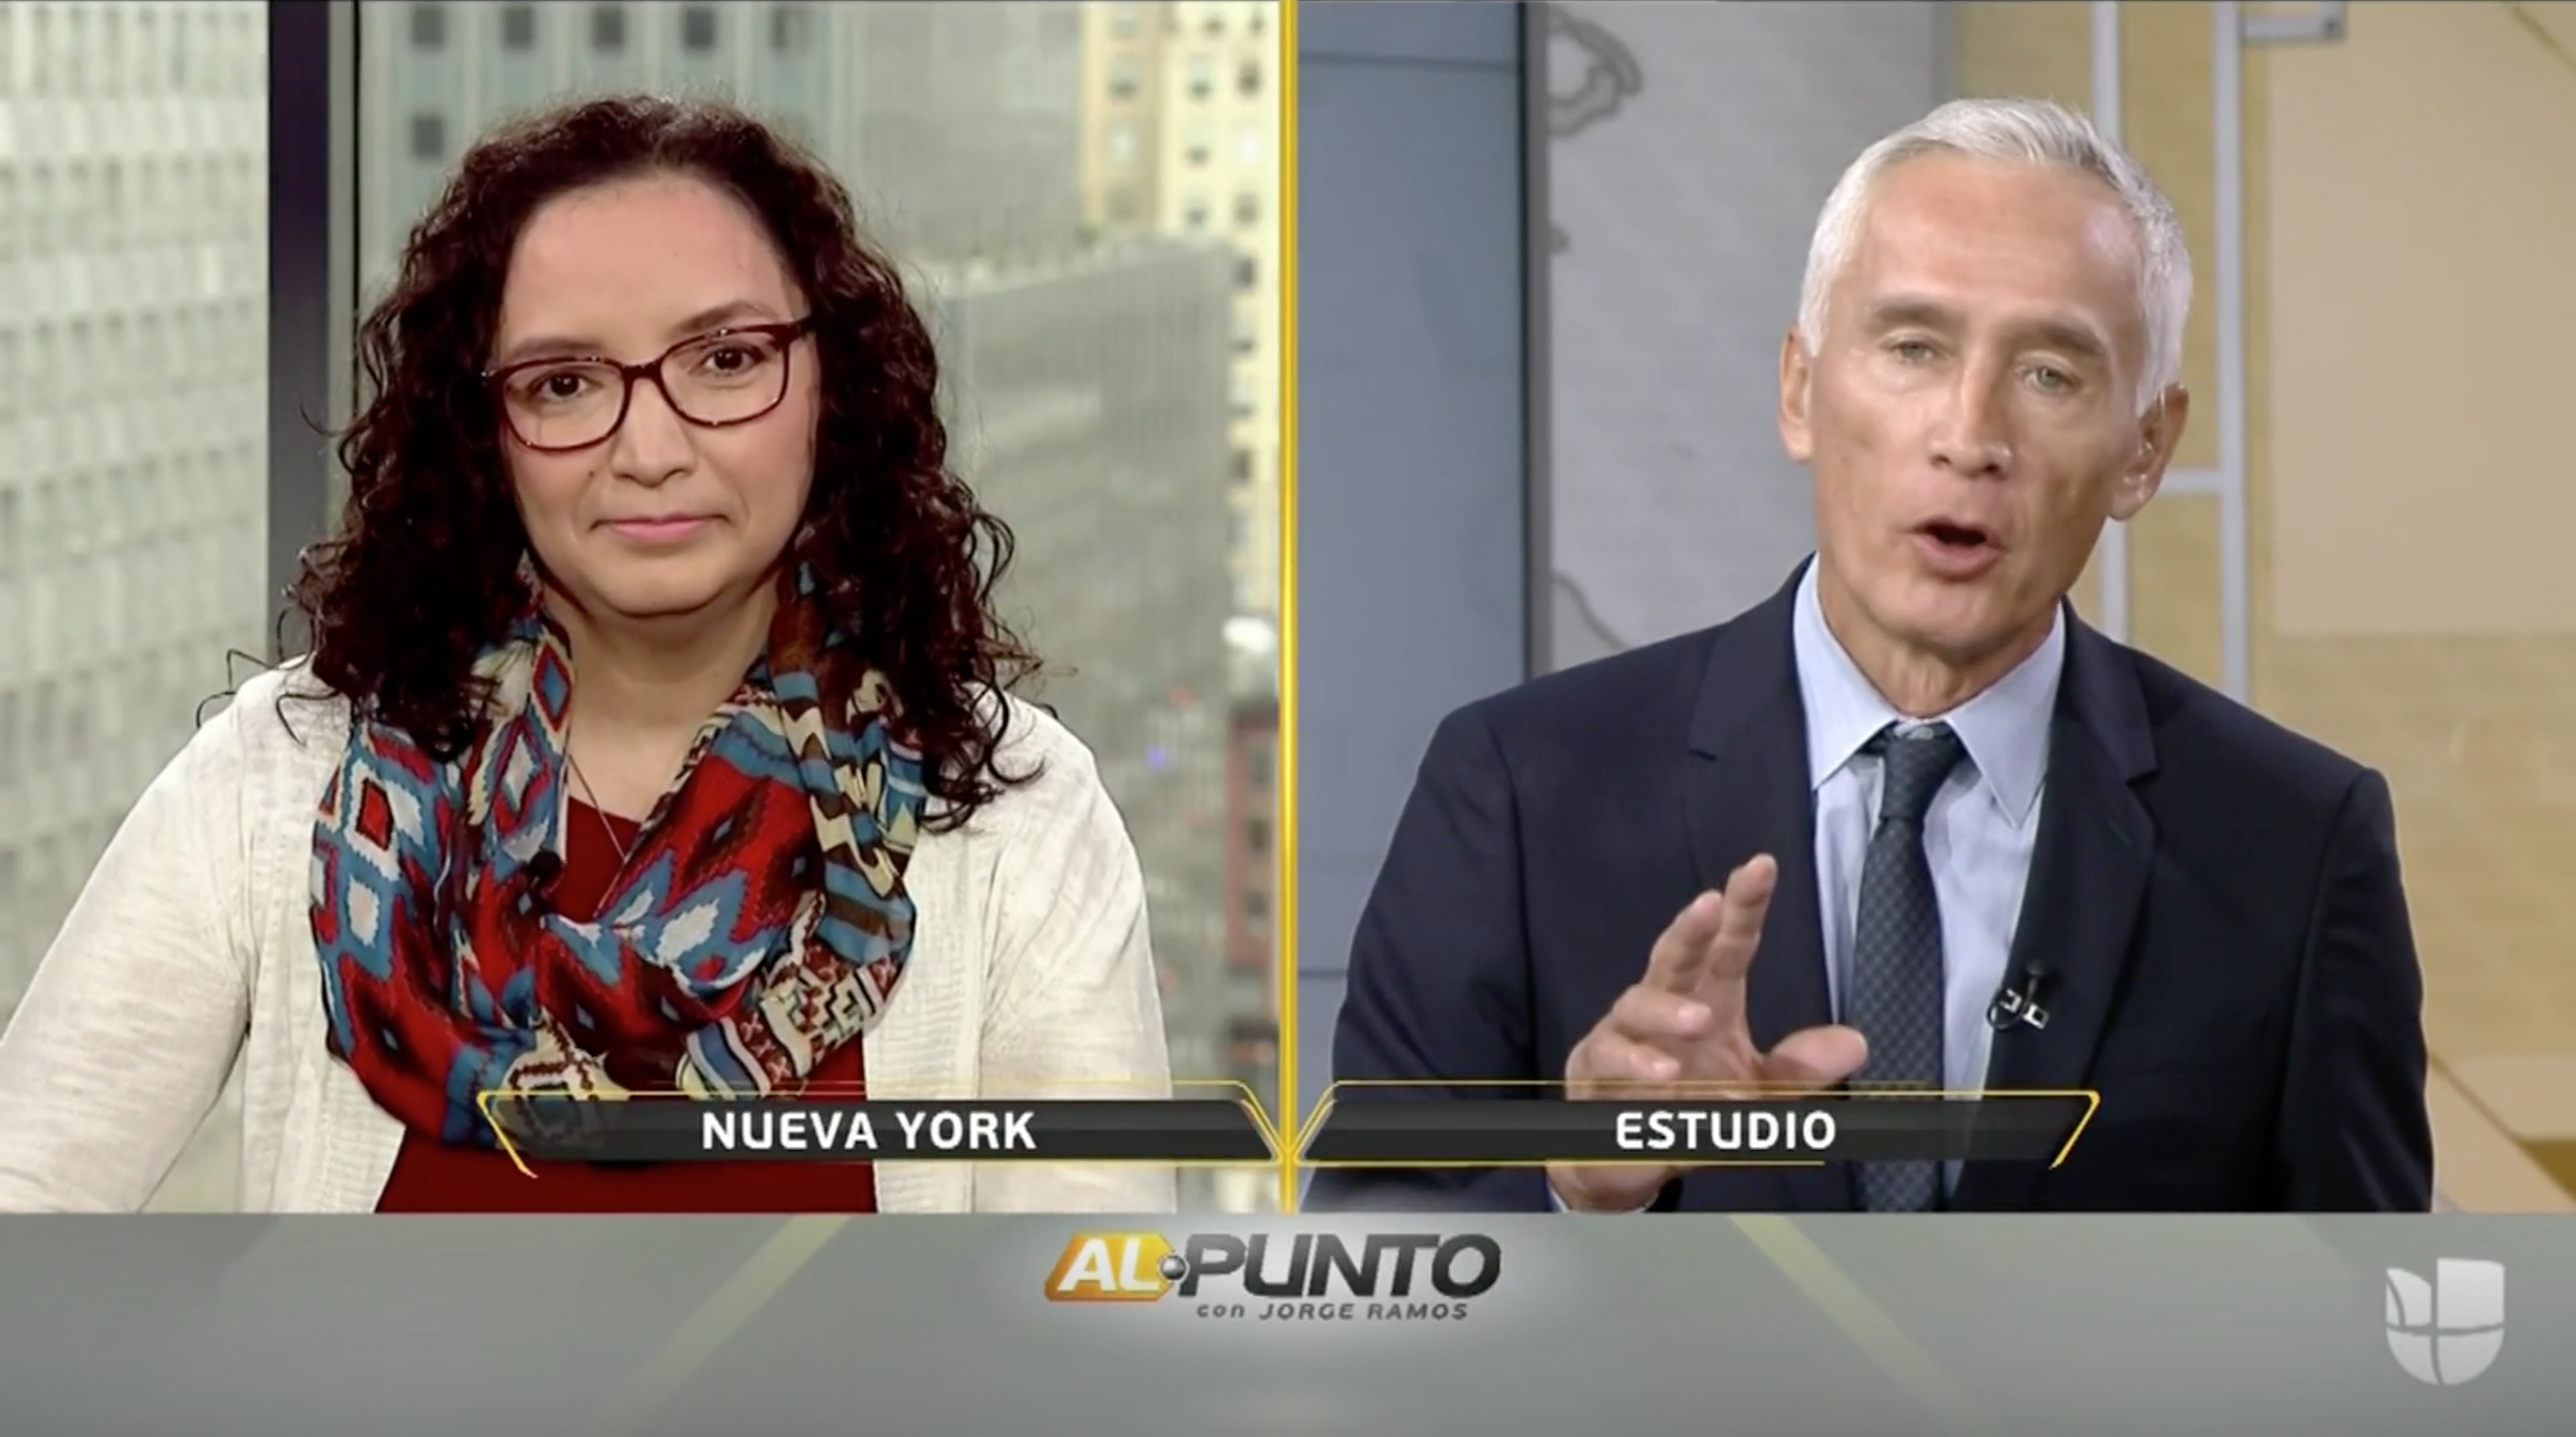 Rosina Lozano speaking with Jorge Ramos on Al Punto